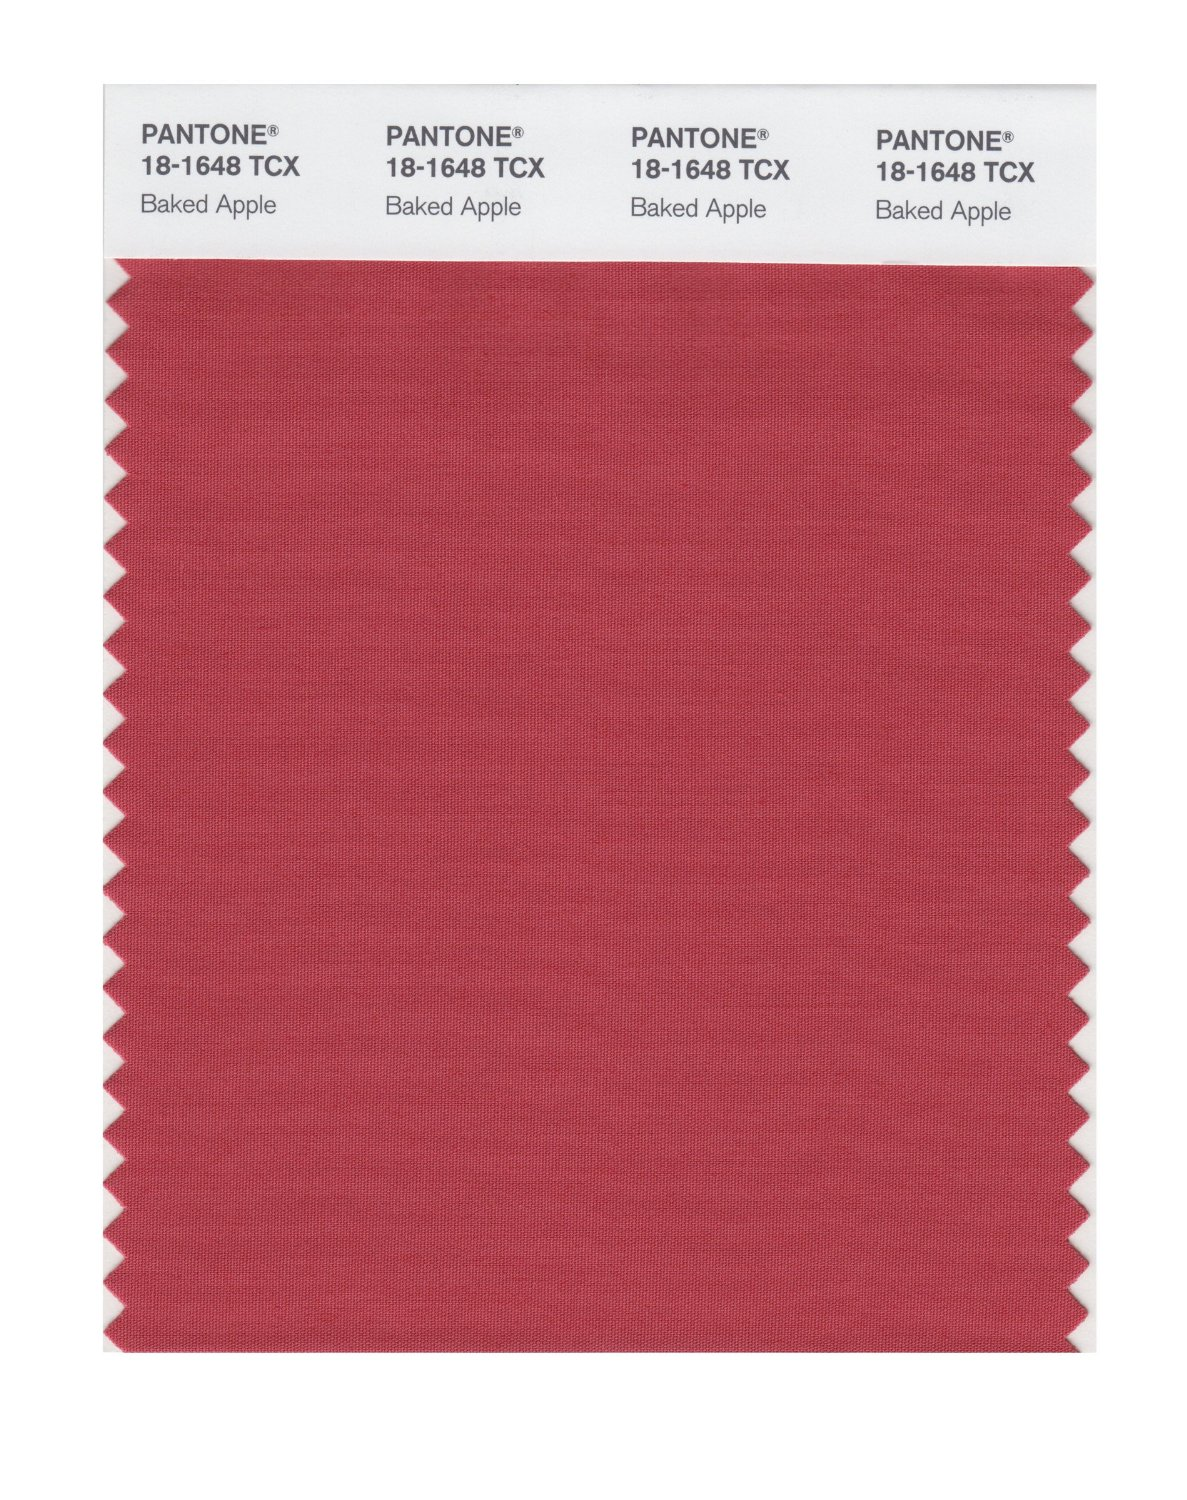 Pantone Smart Swatch 18-1648 Baked Apple